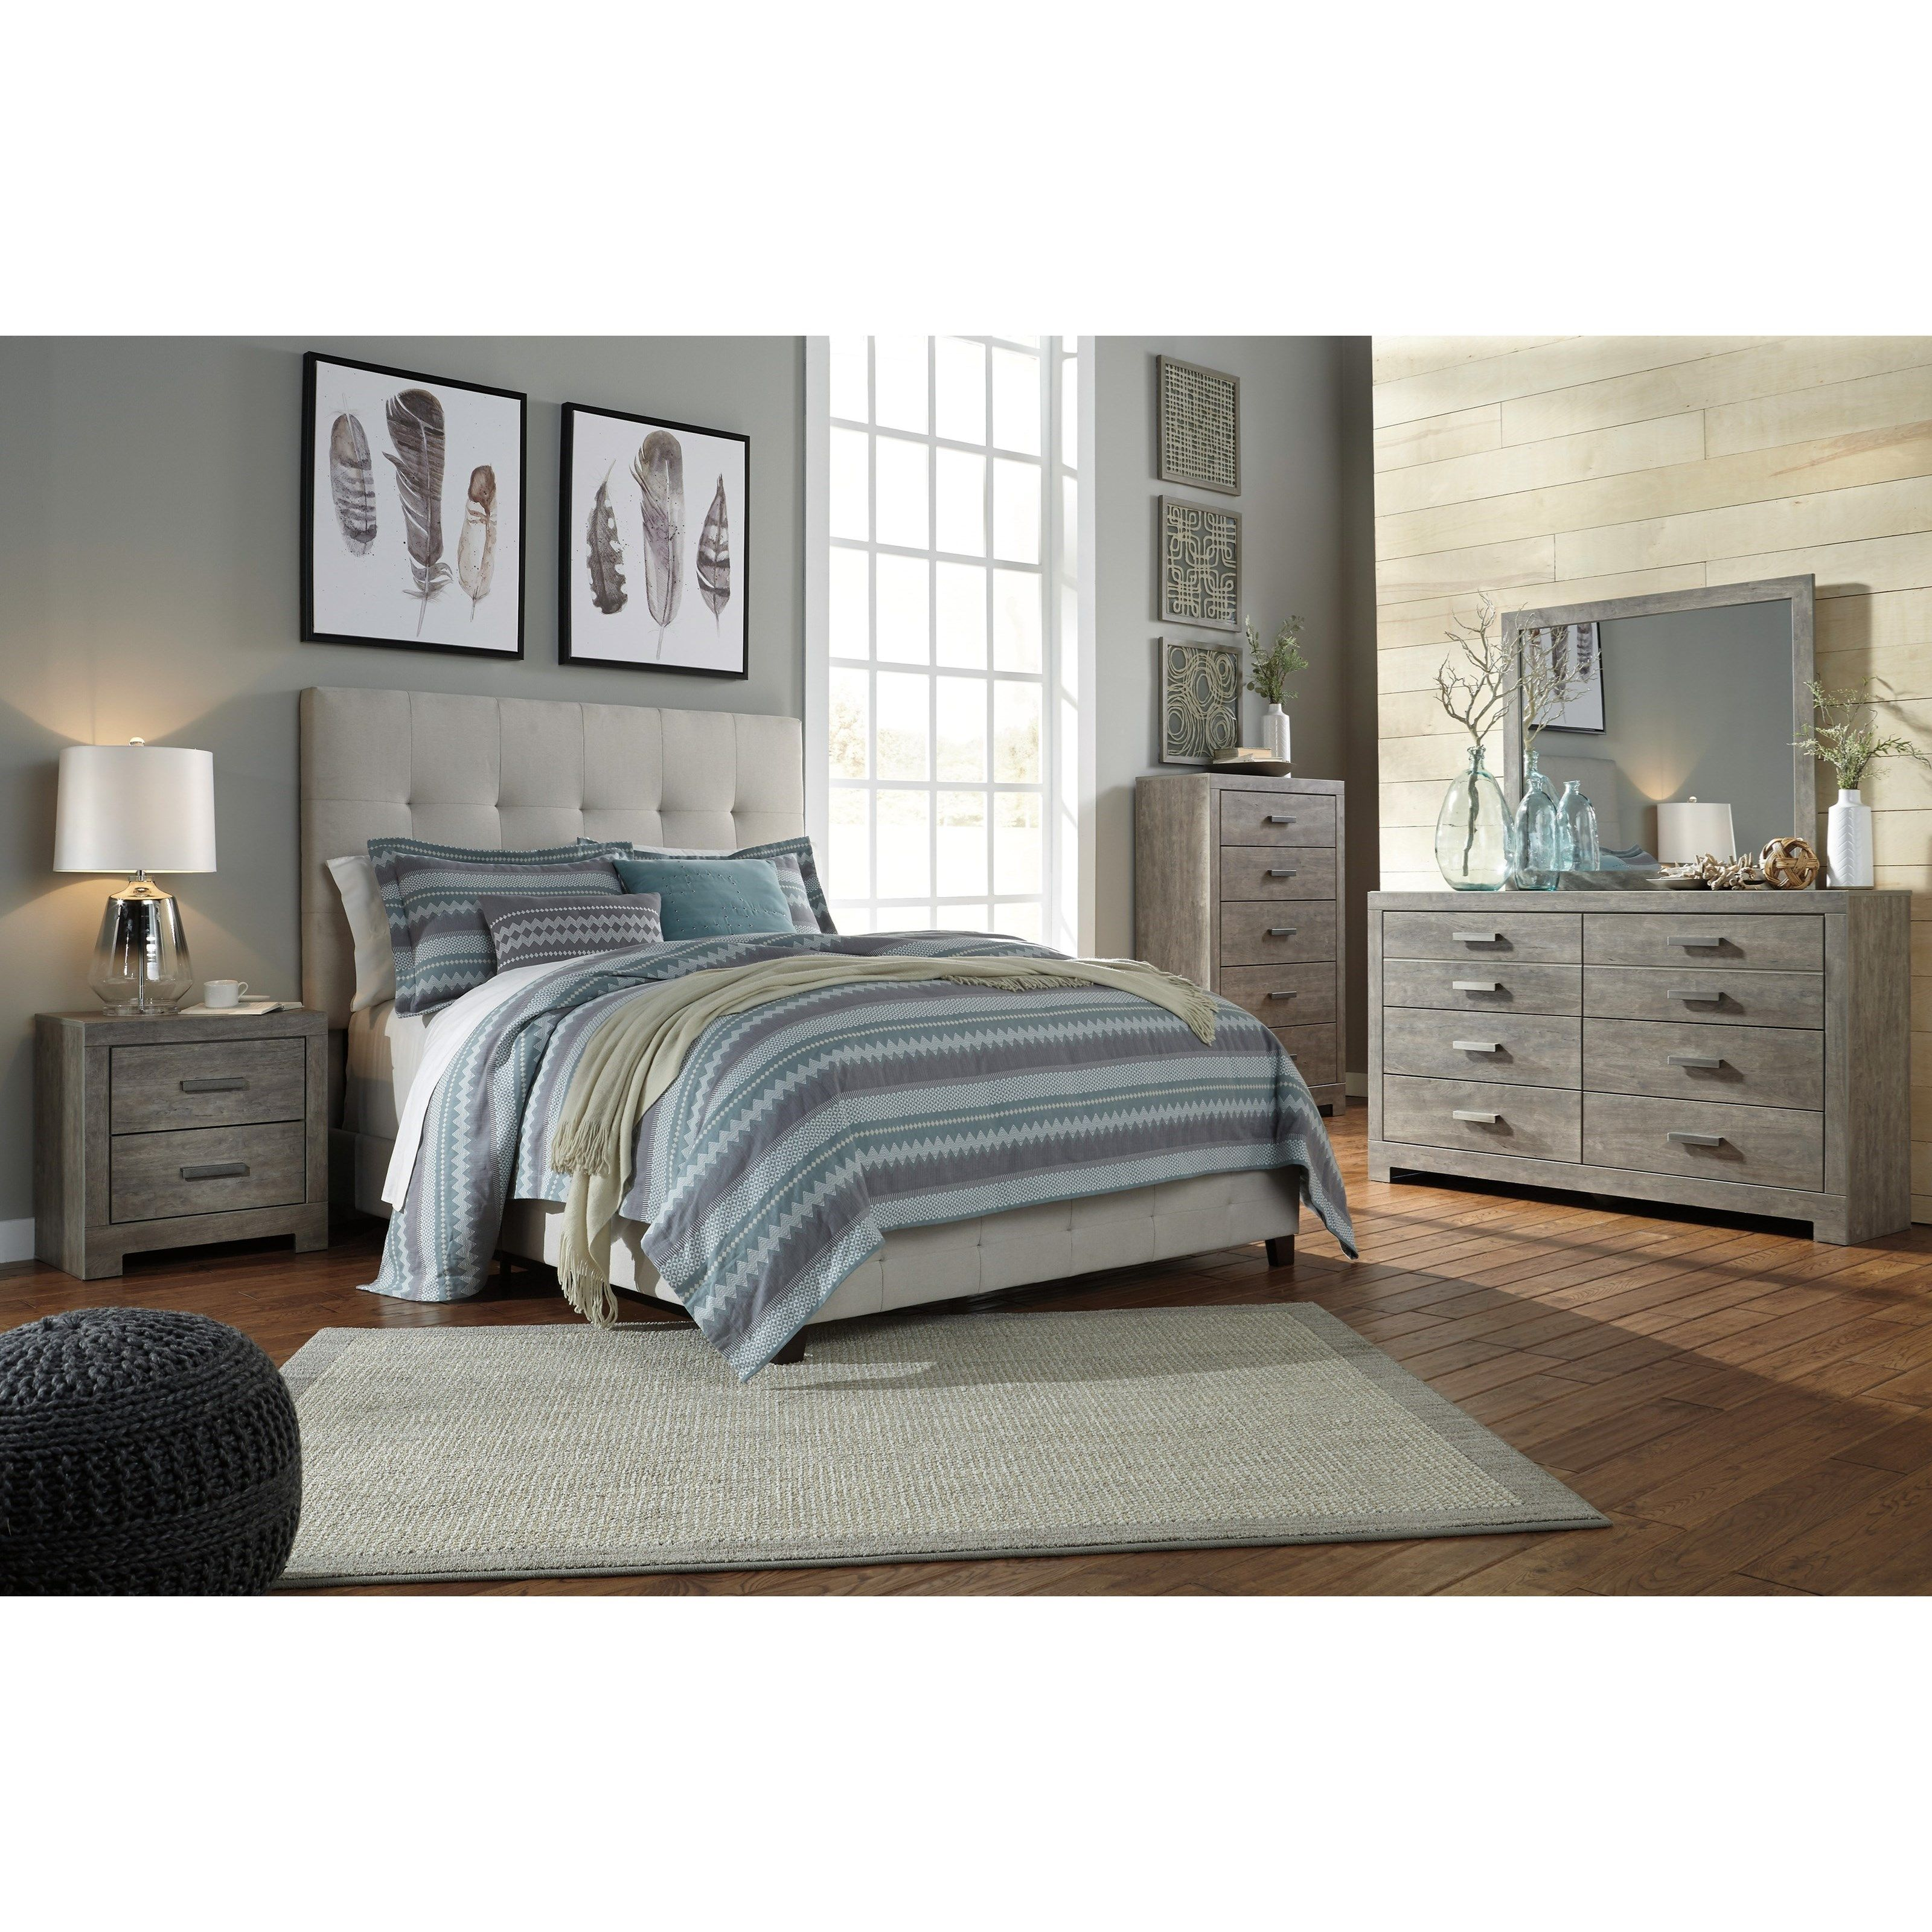 Dolante Queen Upholstered Bed w/ Tufted Headboard